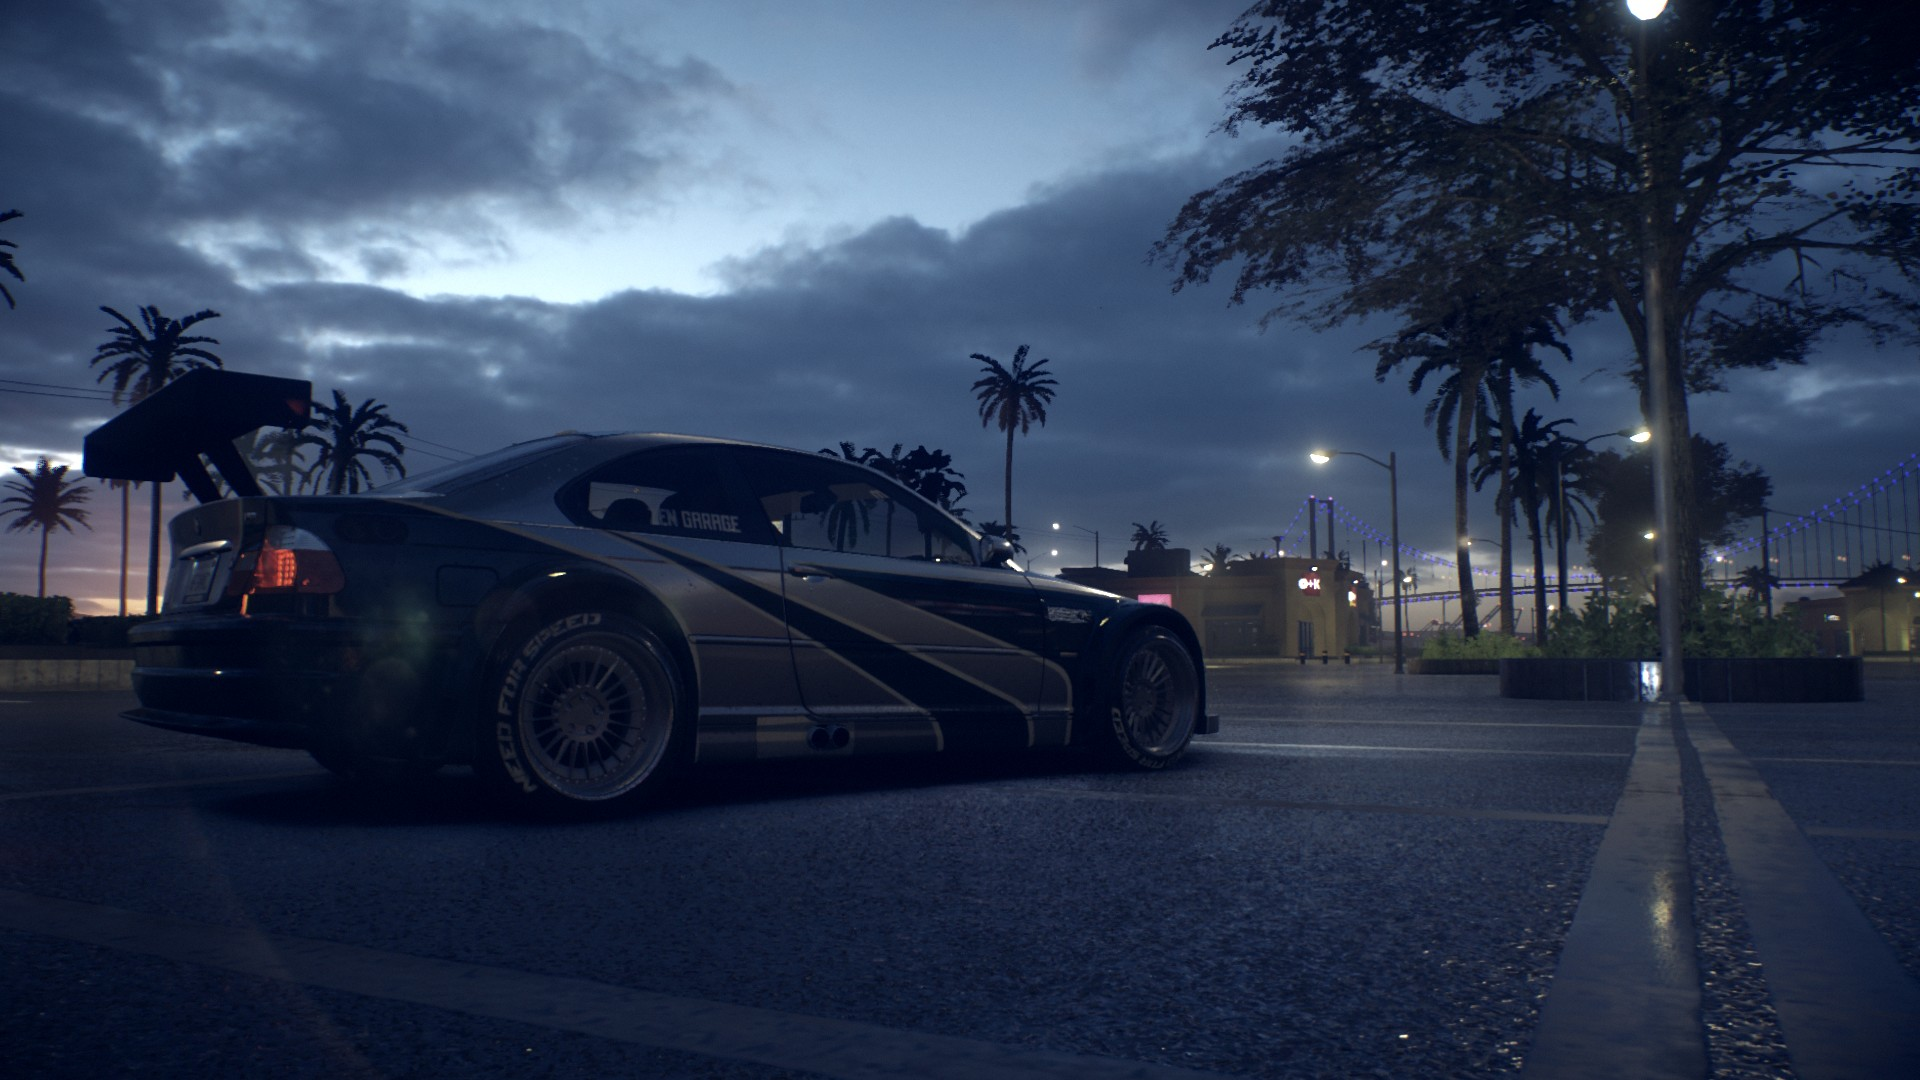 Nfs Most Wanted 2012 Cars Wallpapers Bmw M3 Gtr E46 Hero By Geonfsmw Need For Speed 2015